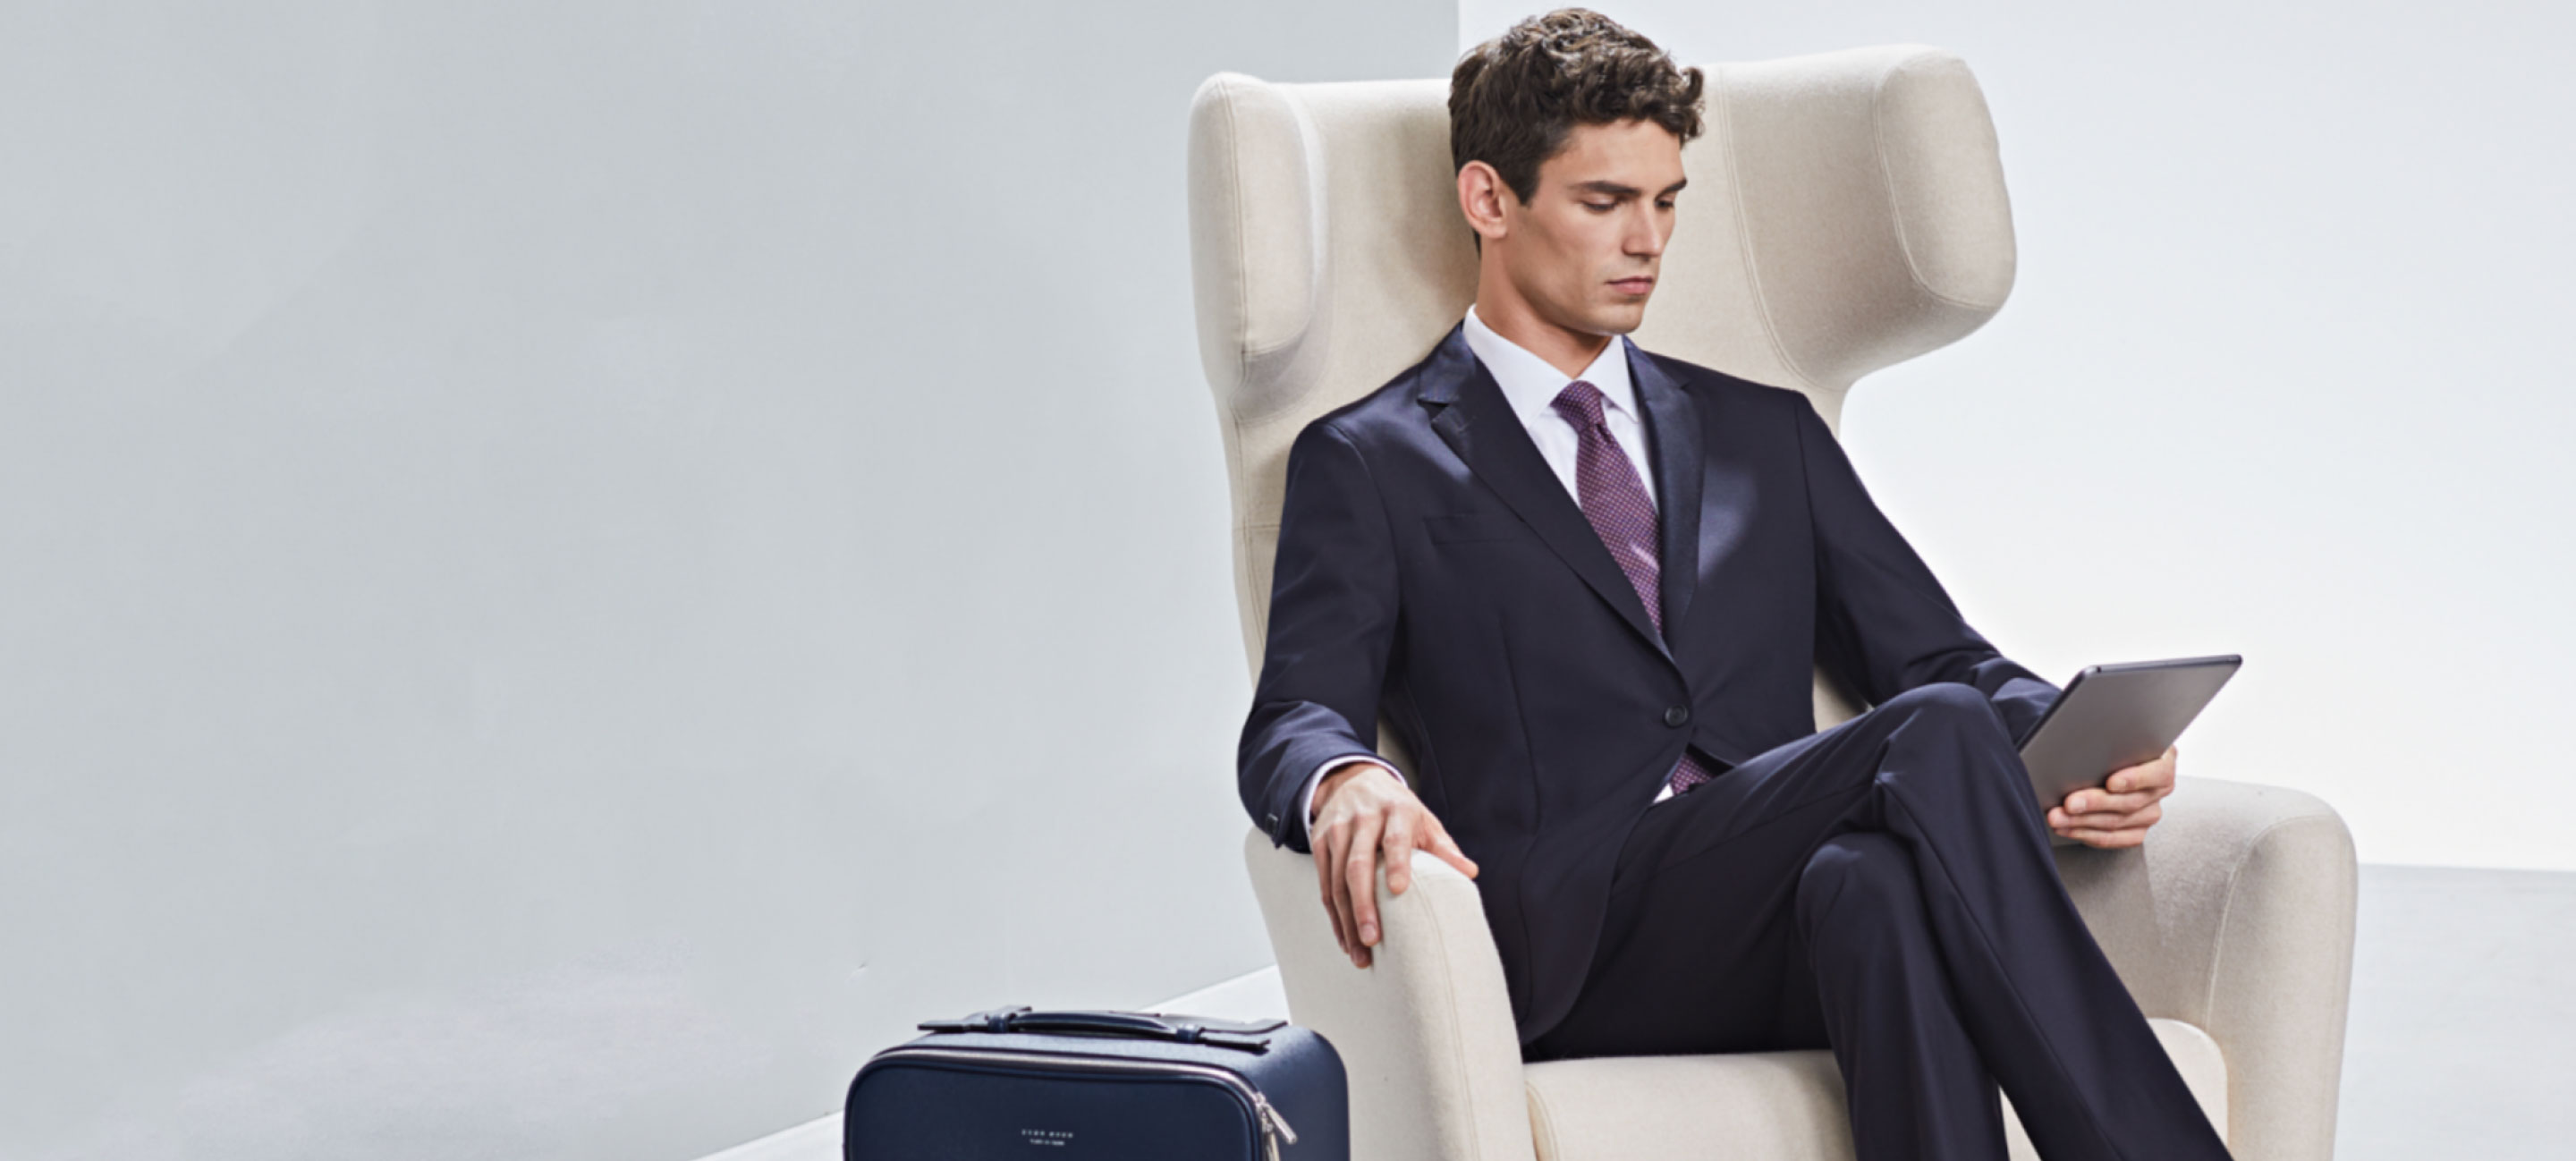 Hugo Boss lifestyle image for email marketing landing page